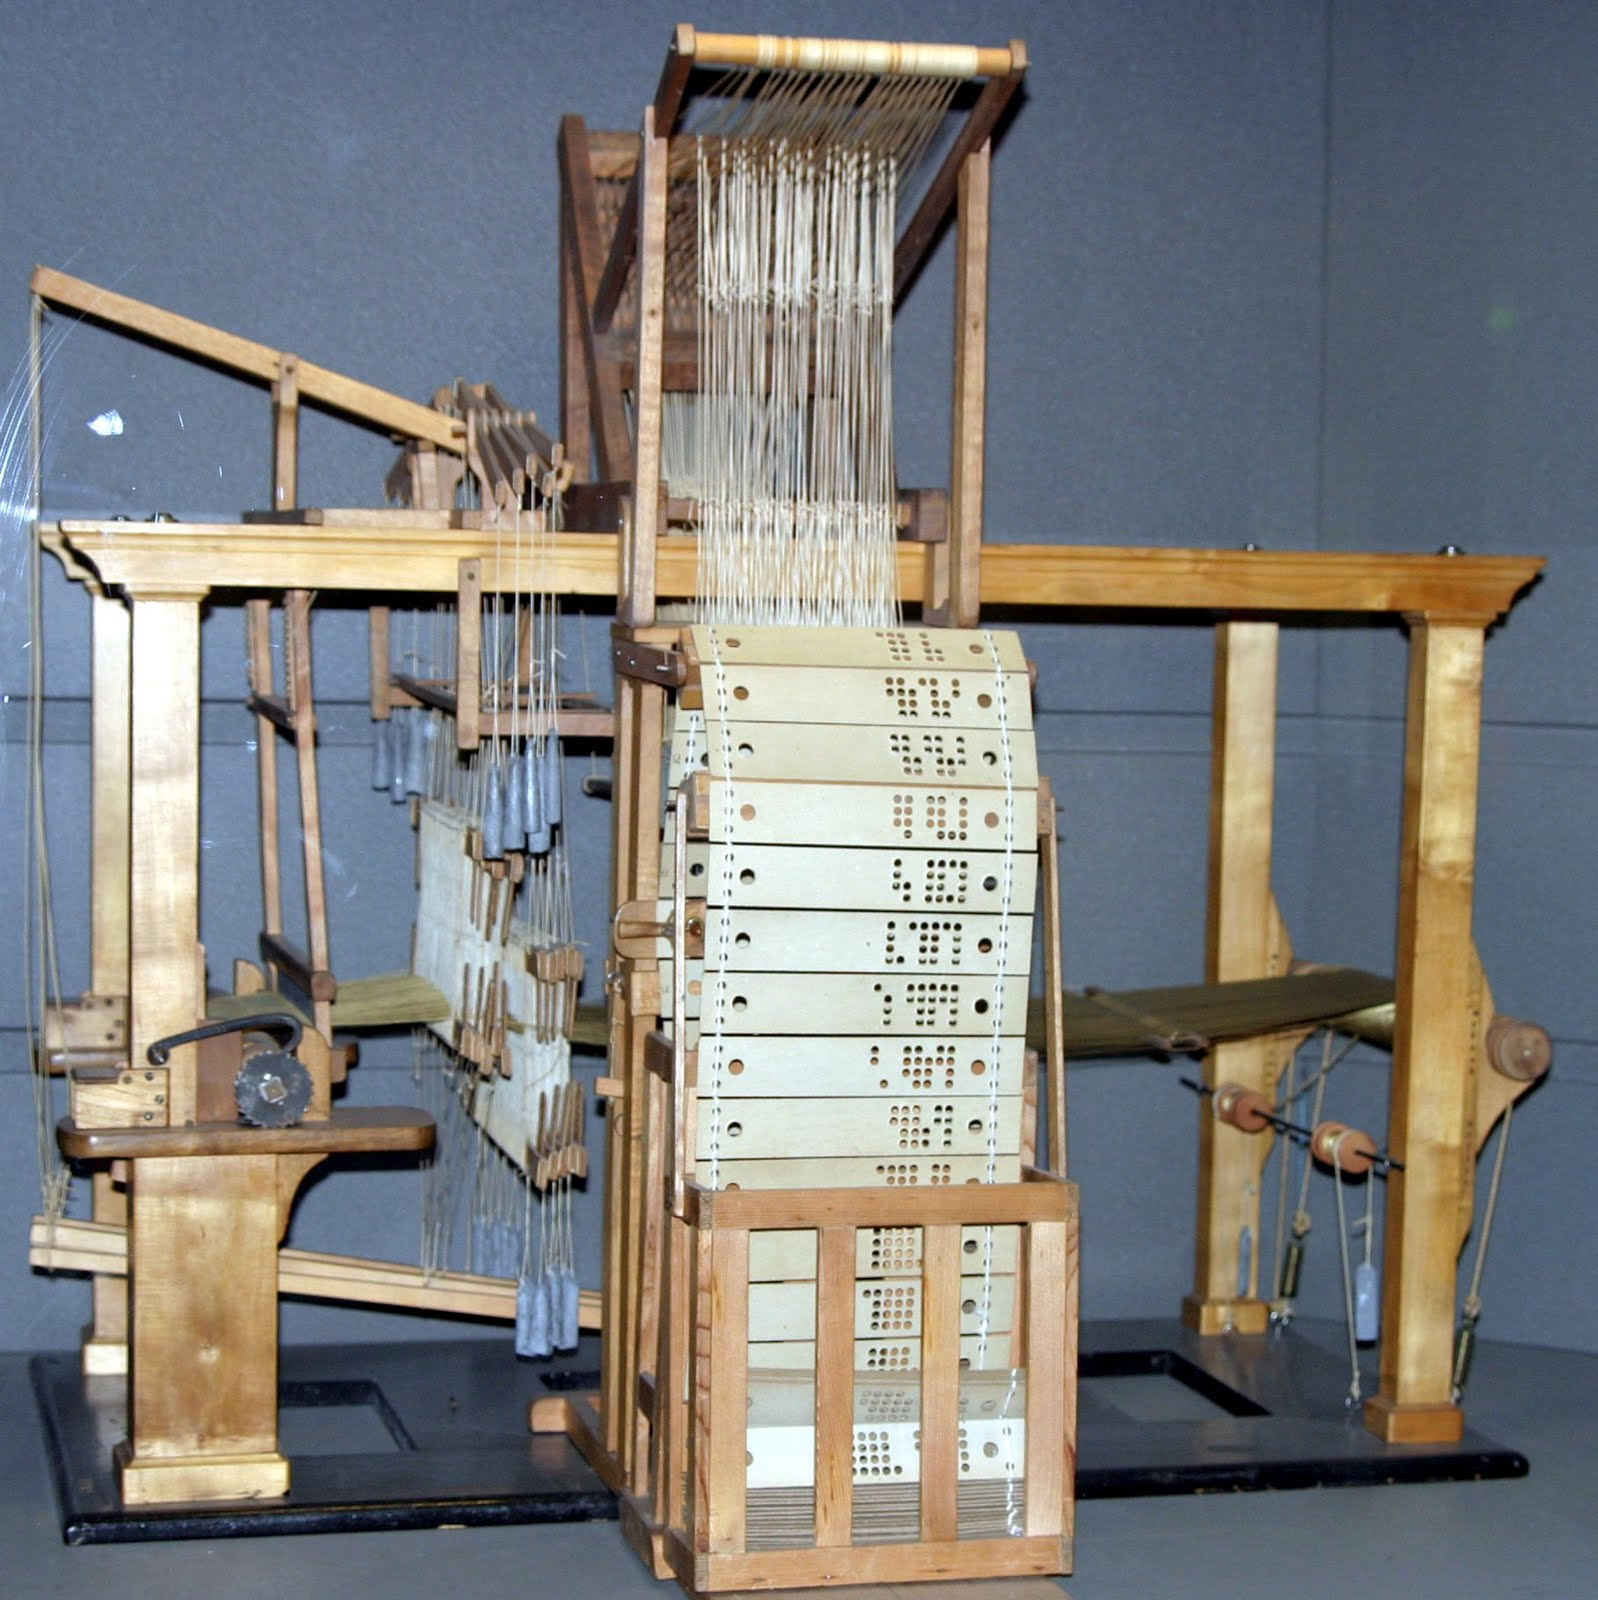 jacquard loom the jacquard loom was invented by joseph marie jacquard ...